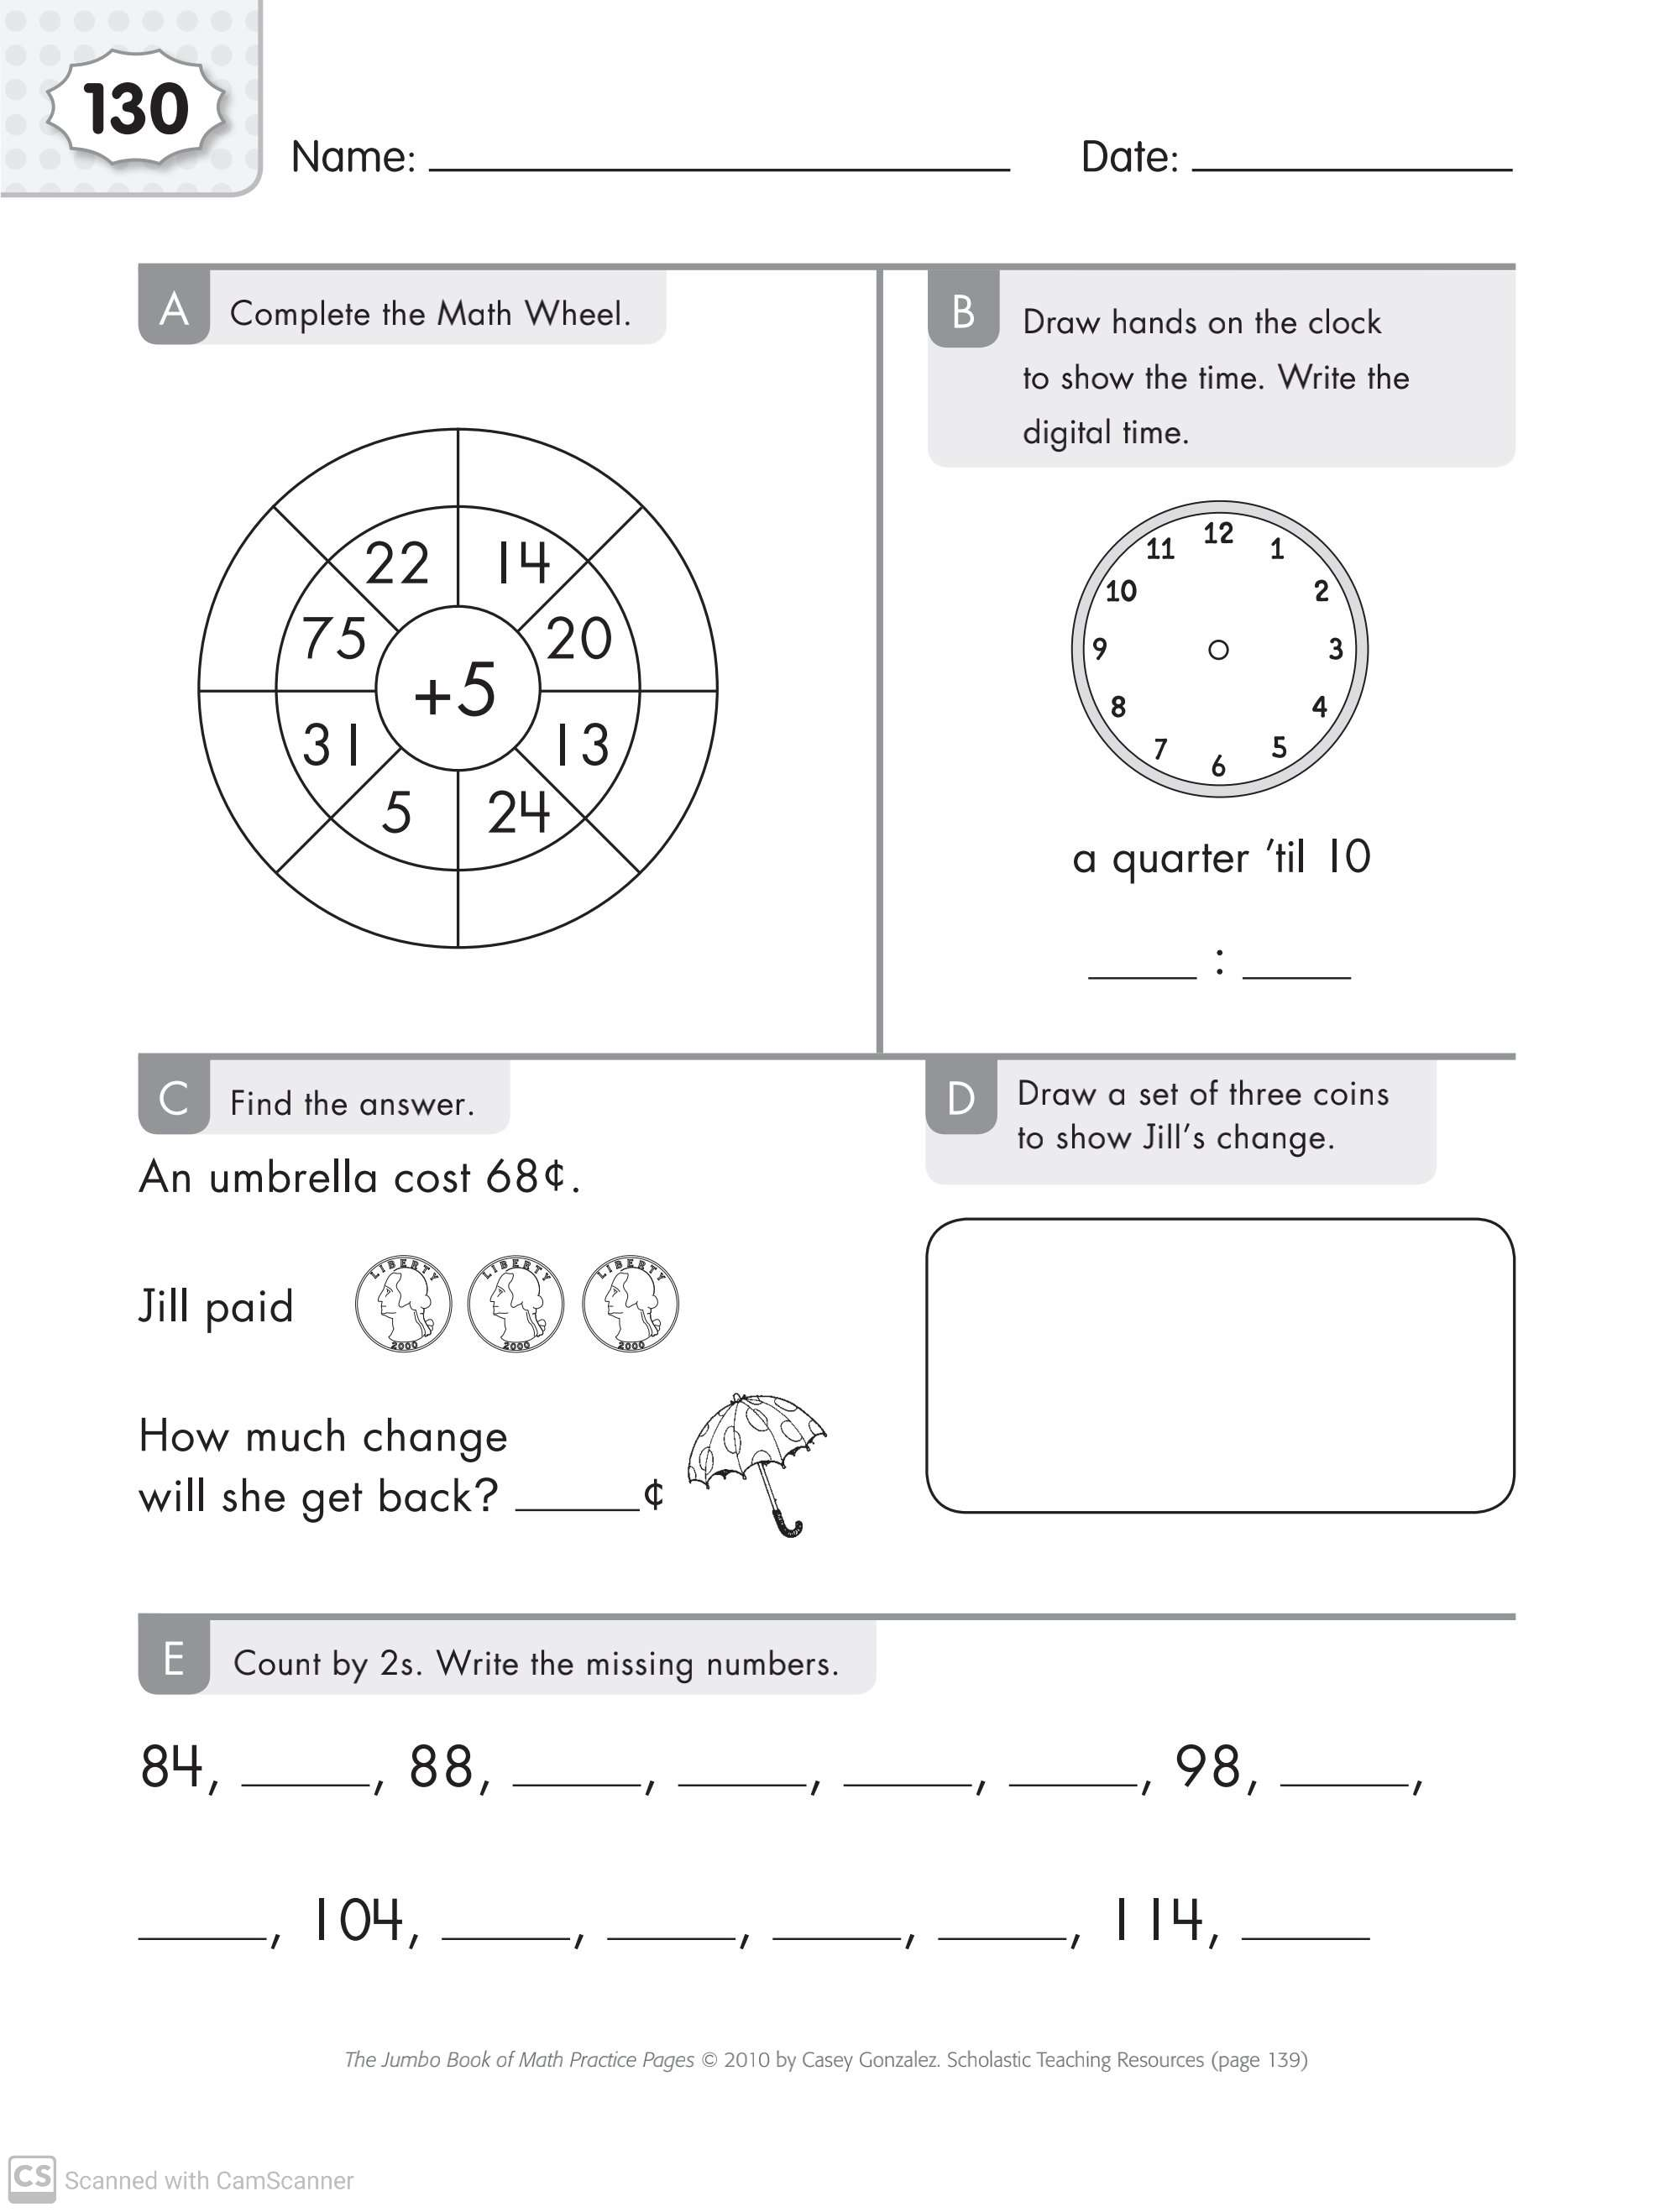 Maths Worksheets For Grade 1 With Answers Part 4